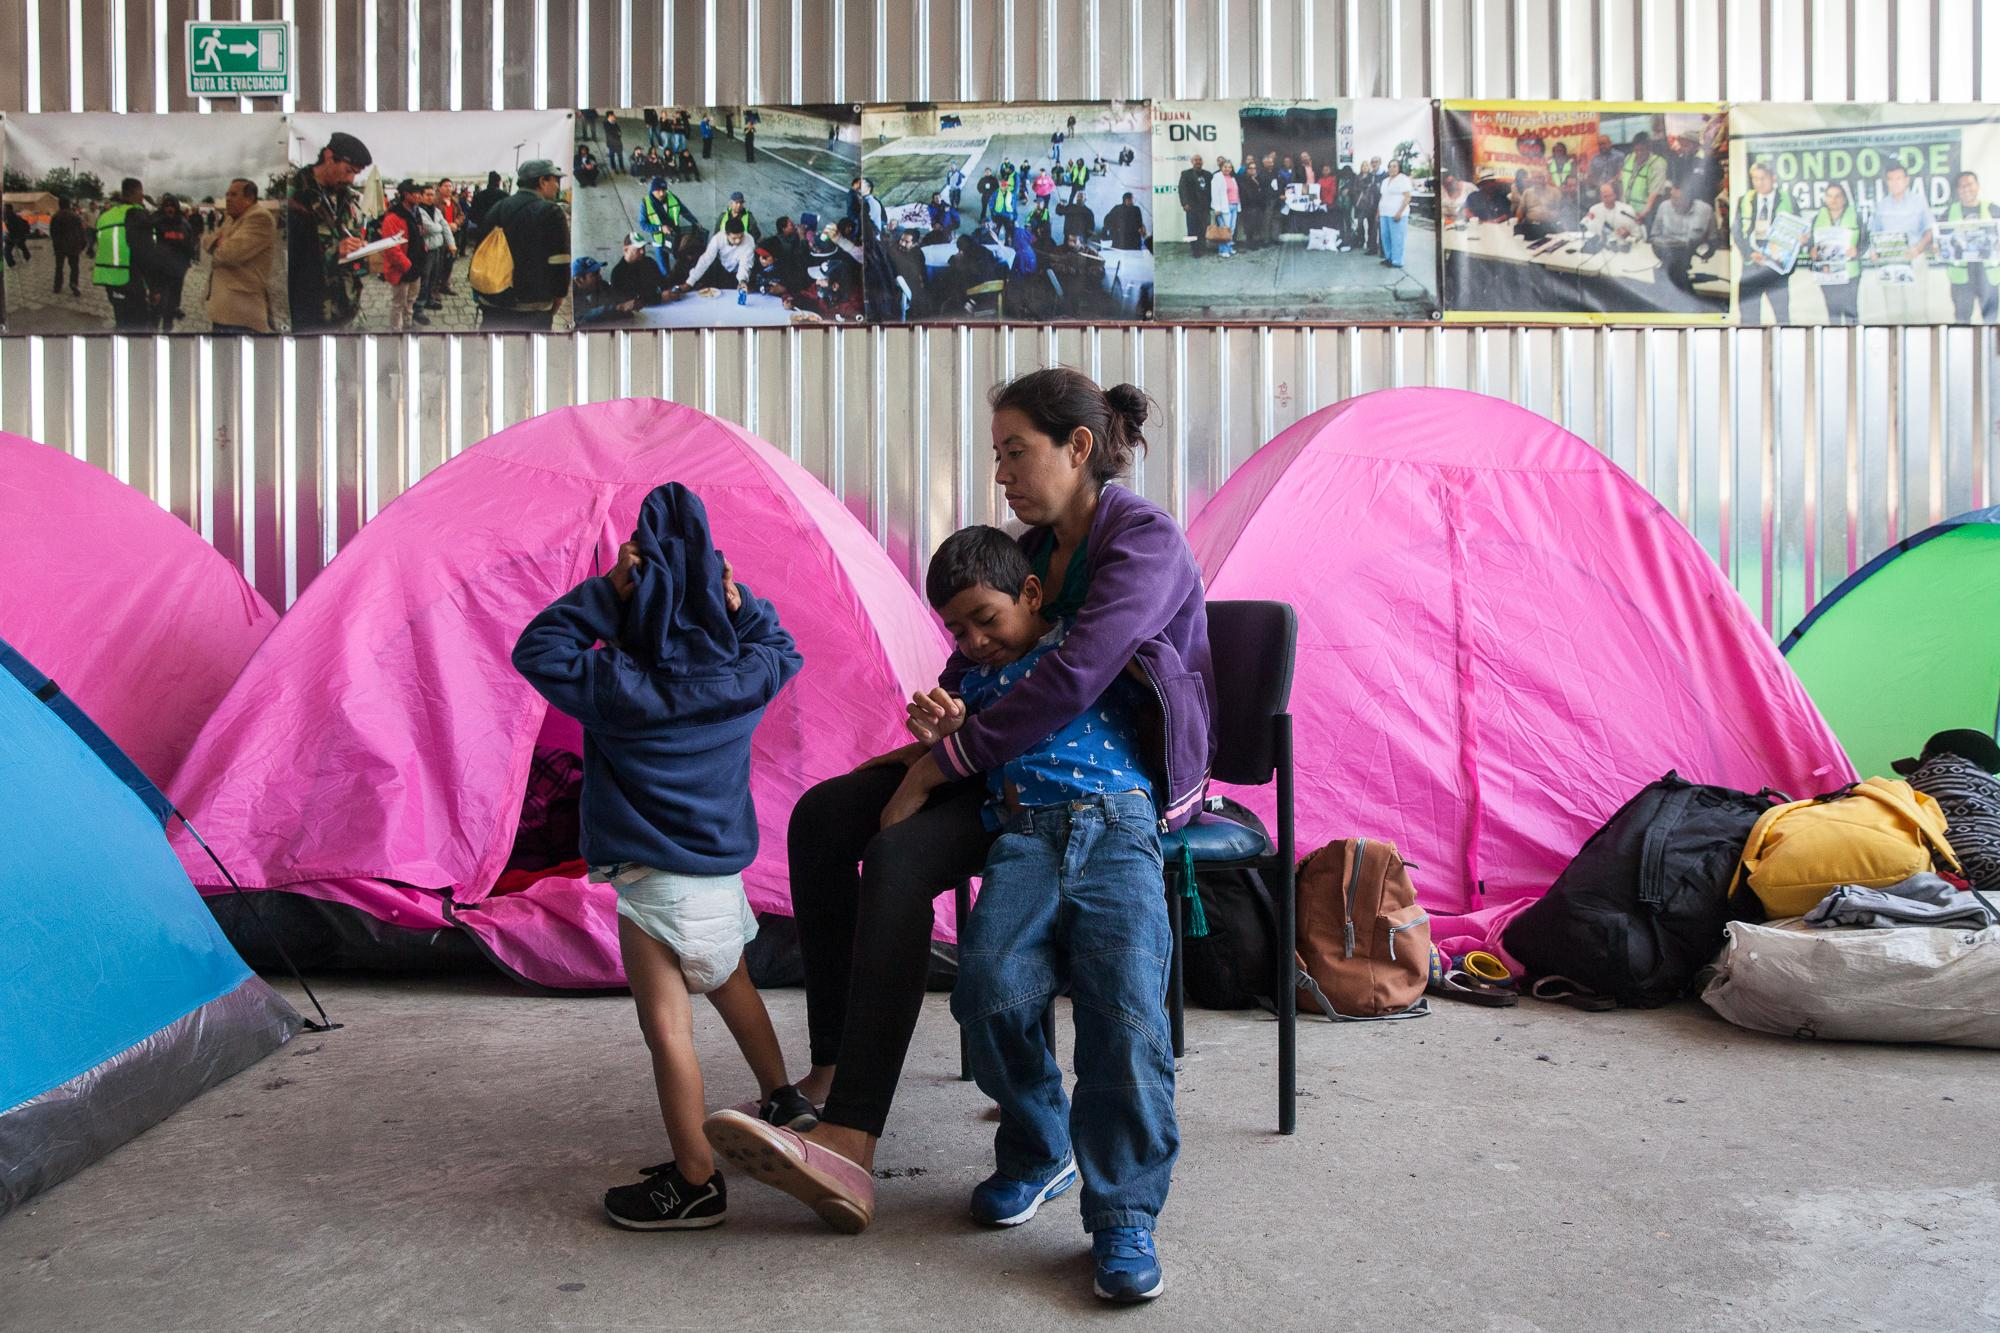 Gabriela Hernandez, a pregnant mother of two, sits in a room filled with tents at Juventud 2000 shelter in Tijuana, MX, with sons Omar, 6 years old and Jonathan 2 years old on April 25, 2018. Hernandez left her husband after suffering domestic abuse. They fled Honduras when gang members threatened to kill her son Omar because they couldn't find her ex. They said she had 12 hours to give up her ex or else. She decided to take her children and travel with the migrant caravan through Mexico.